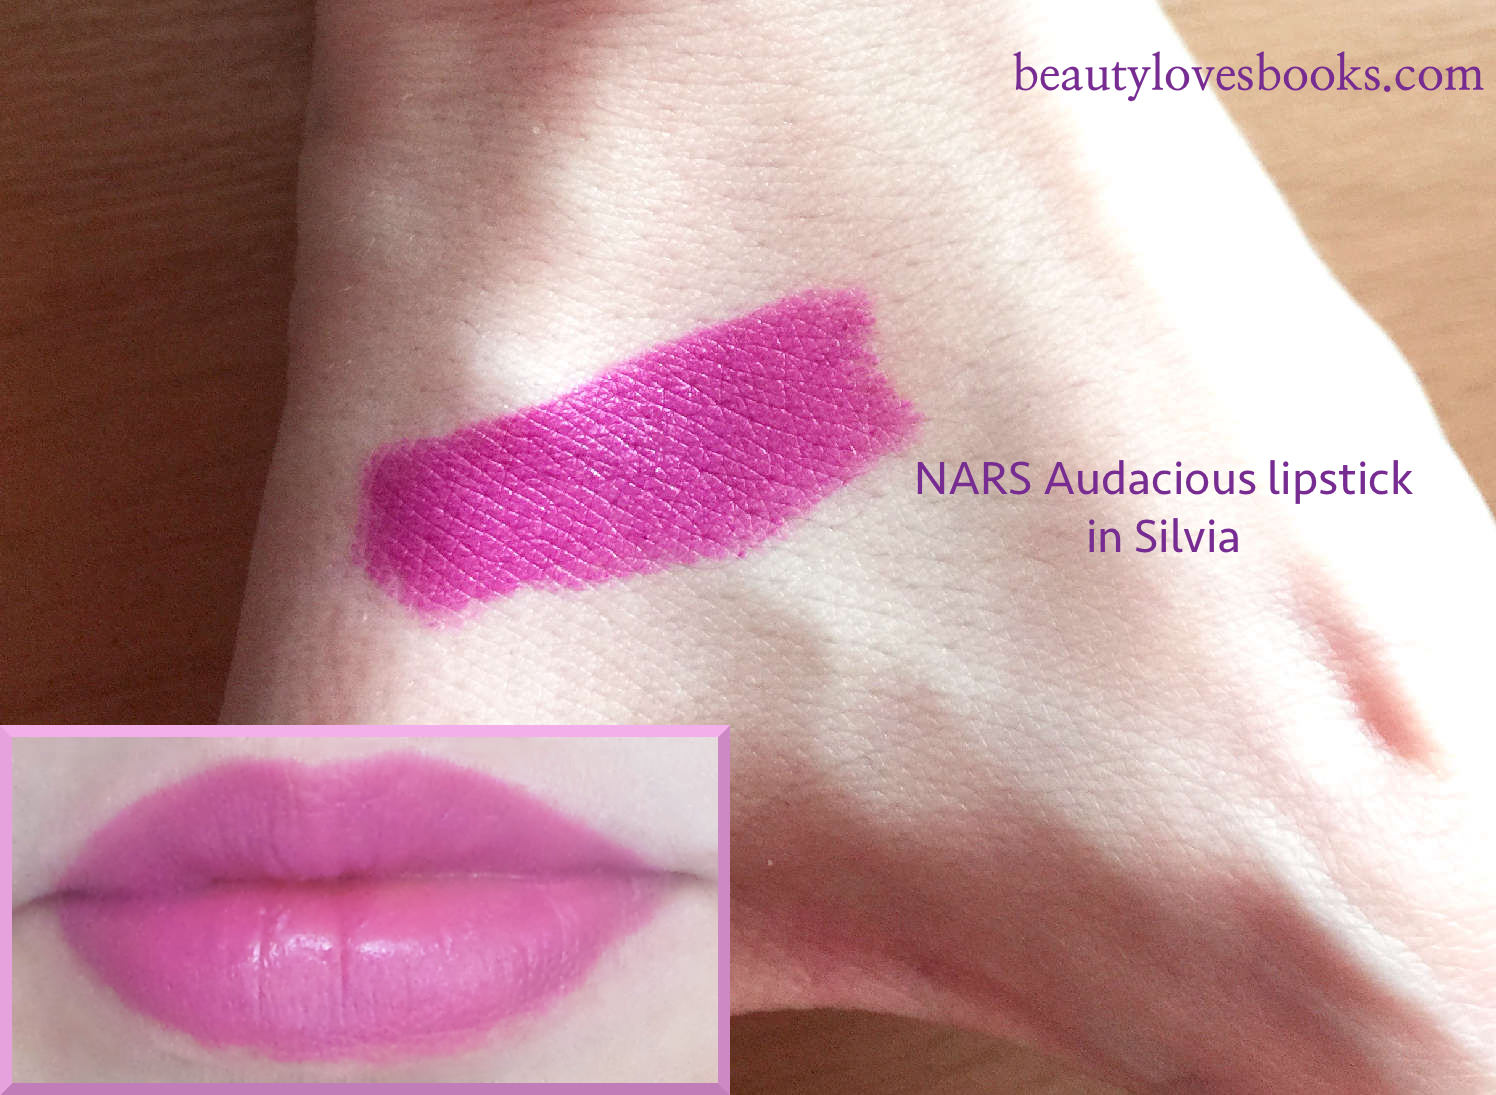 NARS Audacious lipstick in Silvia swatches